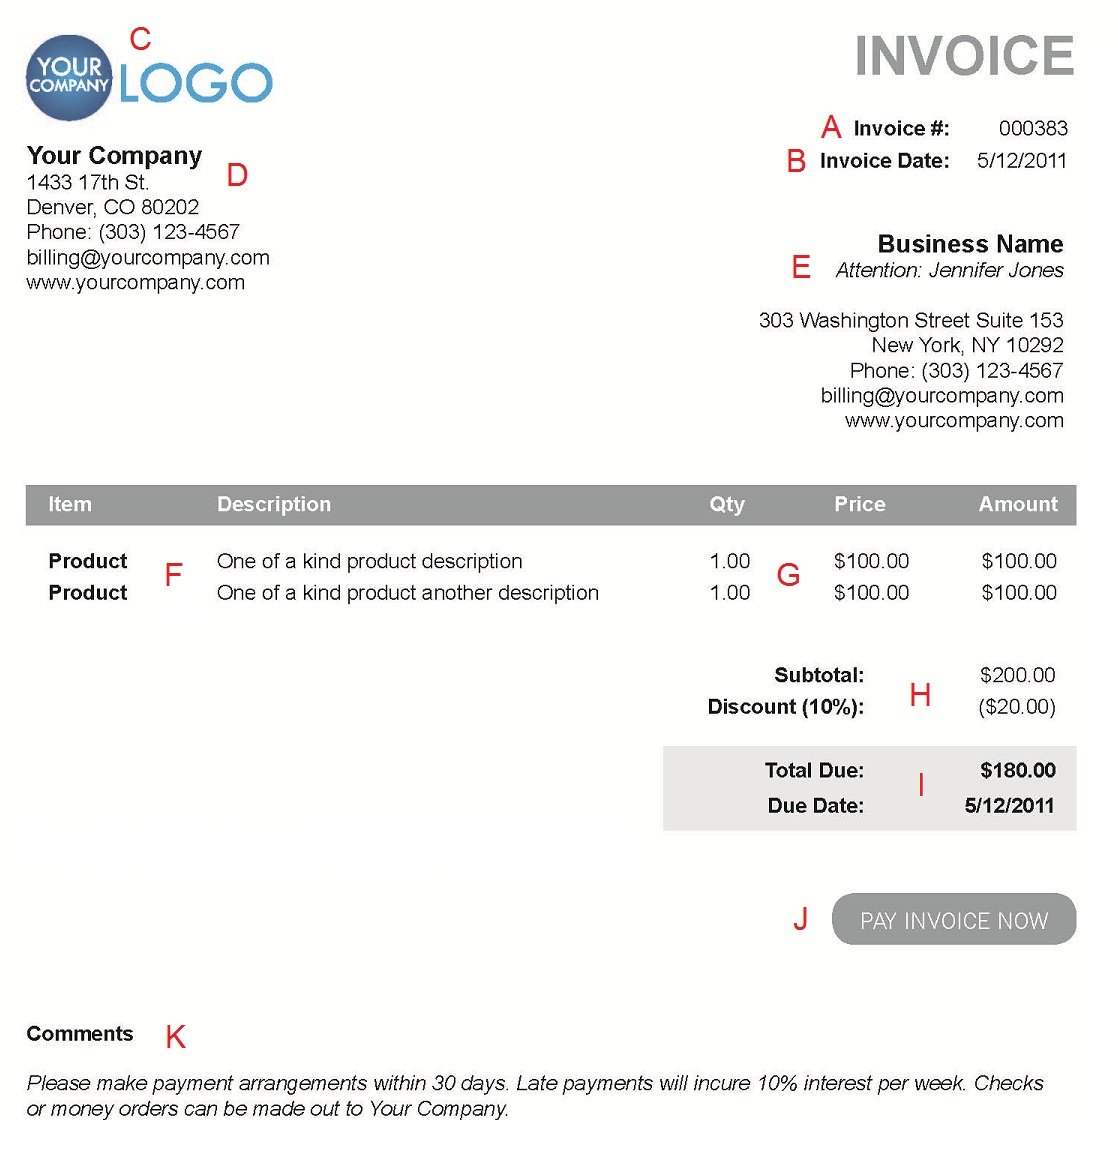 Coolmathgamesus  Pleasant The  Different Sections Of An Electronic Payment Invoice With Goodlooking A  With Awesome Usps Certified Mail With Return Receipt Also Download Receipt Template In Addition Payment Receipt Template Excel And Neat Receipts Scanner Reviews As Well As What Is Receipt Number Additionally Tax Receipts For Donations From Paysimplecom With Coolmathgamesus  Goodlooking The  Different Sections Of An Electronic Payment Invoice With Awesome A  And Pleasant Usps Certified Mail With Return Receipt Also Download Receipt Template In Addition Payment Receipt Template Excel From Paysimplecom